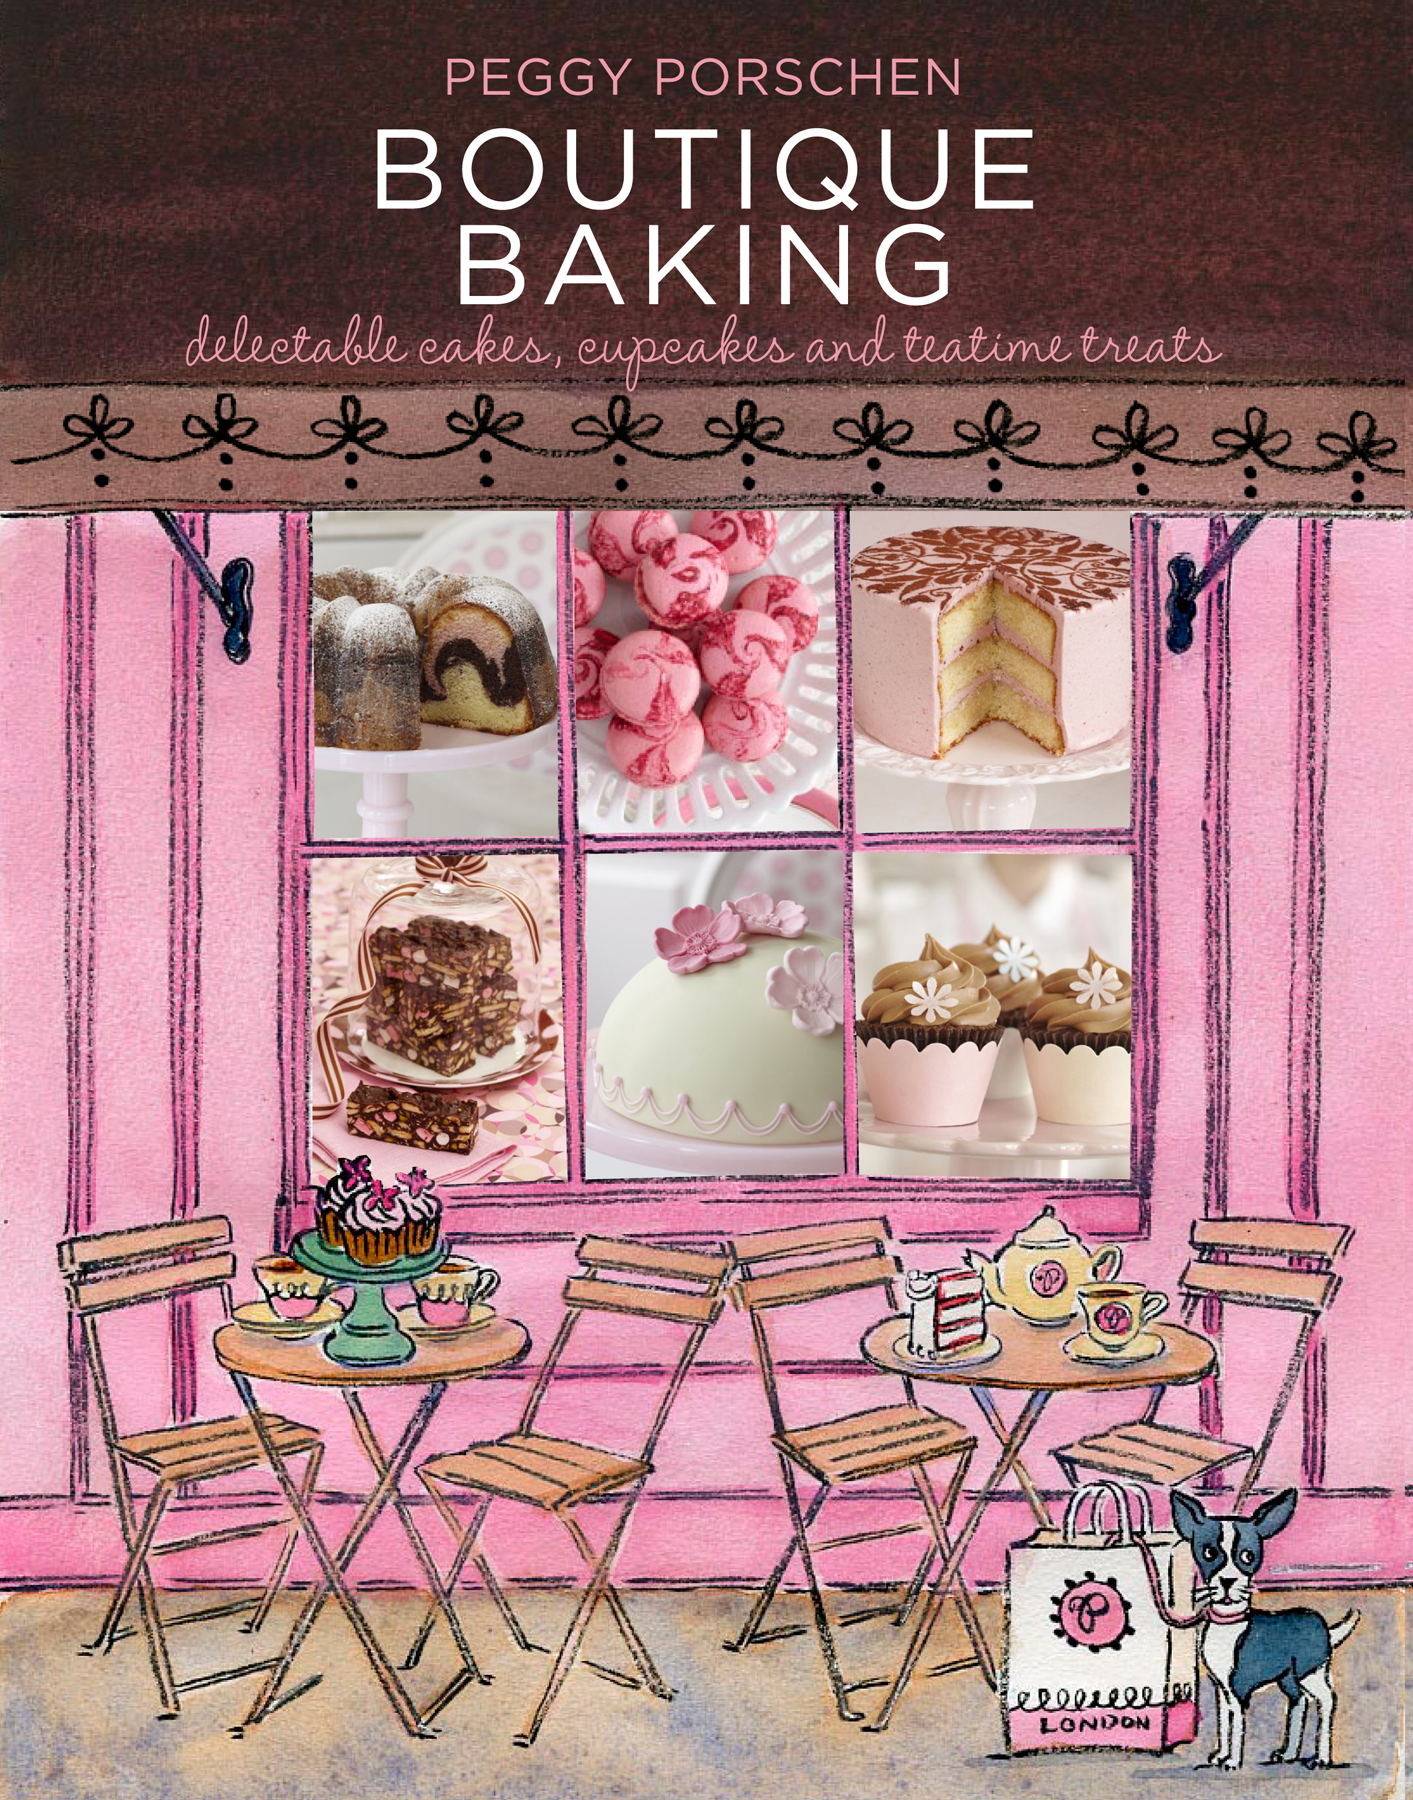 Boutique Baking